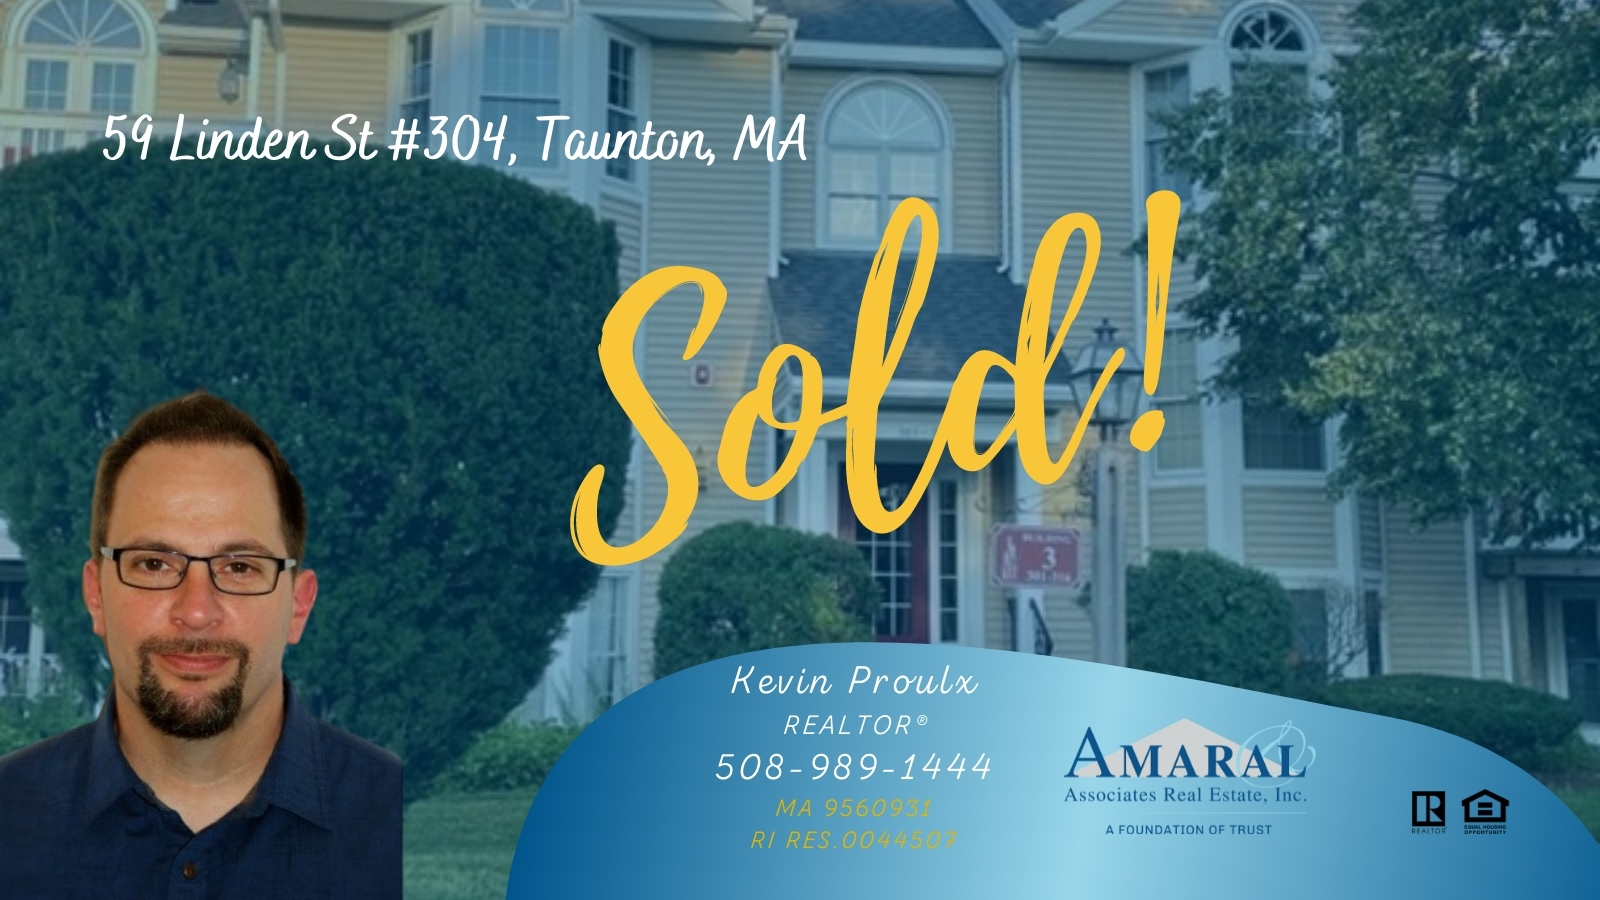 SOLD with Kevin Proulx! 59 Linden St #304, Taunton, MA